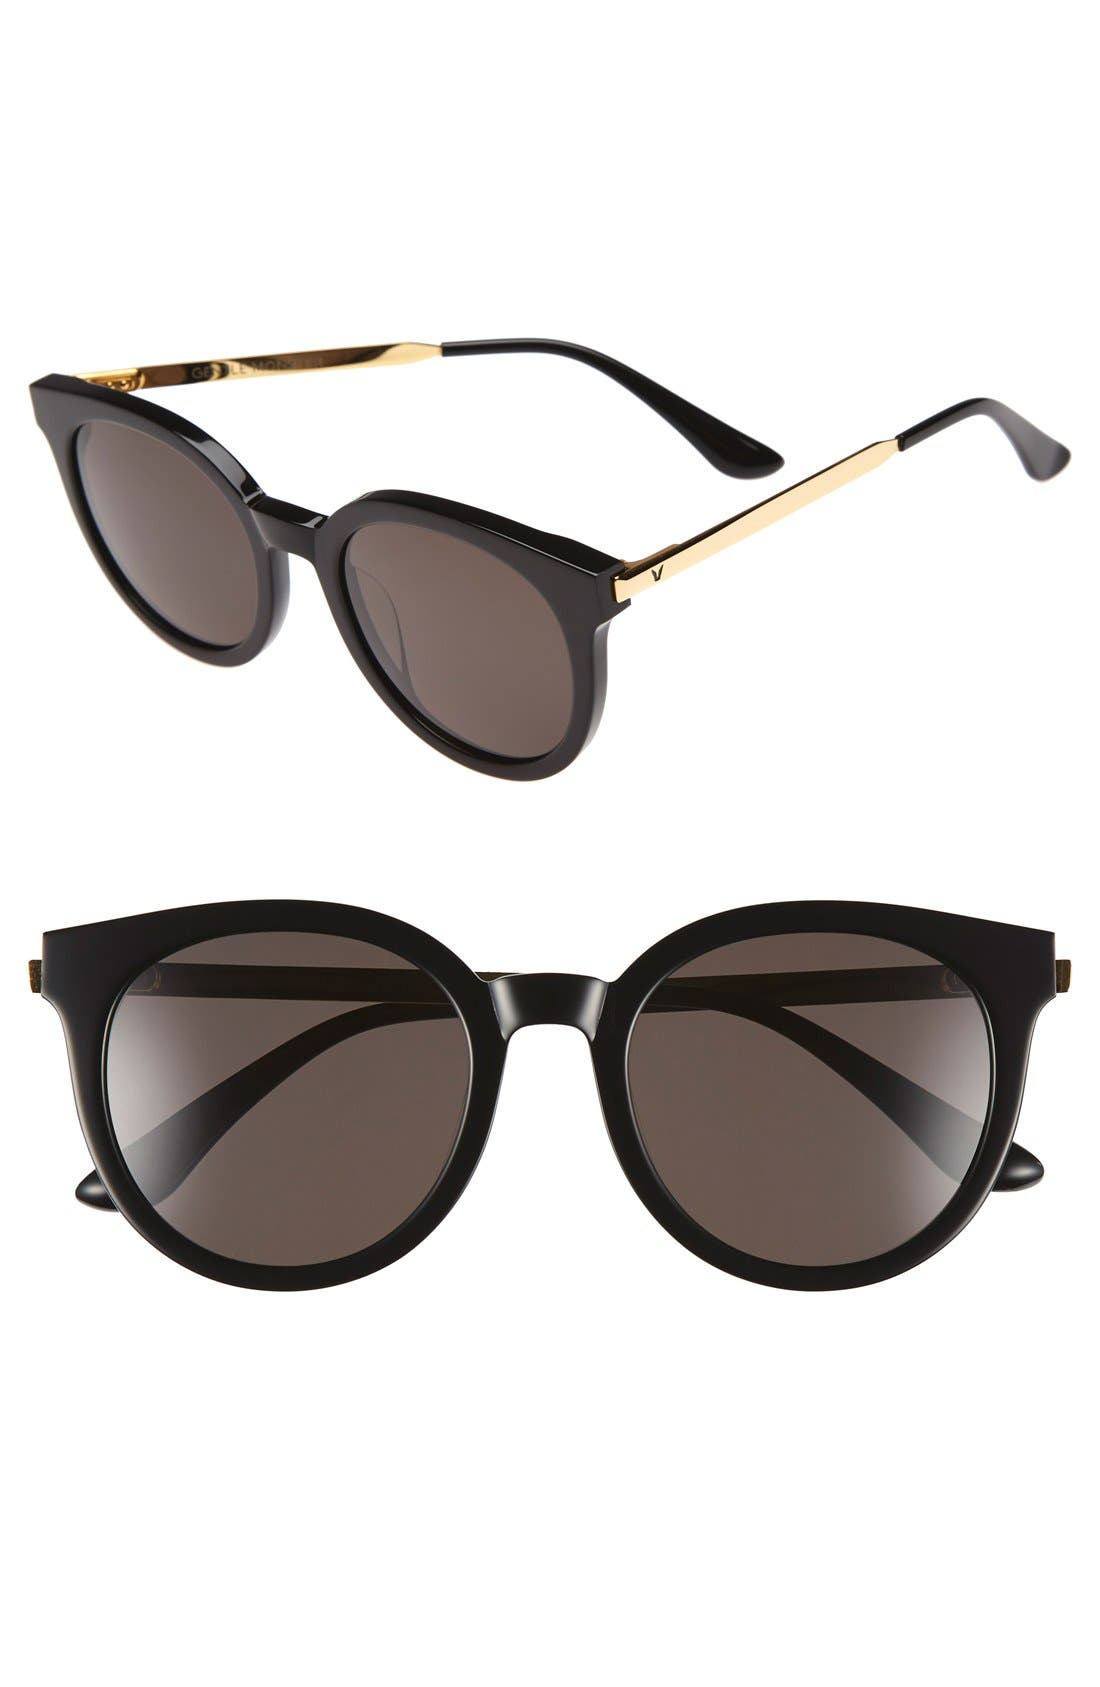 GENTLE MONSTER 'Didi A' 52mm Retro Sunglasses, Main, color, 001